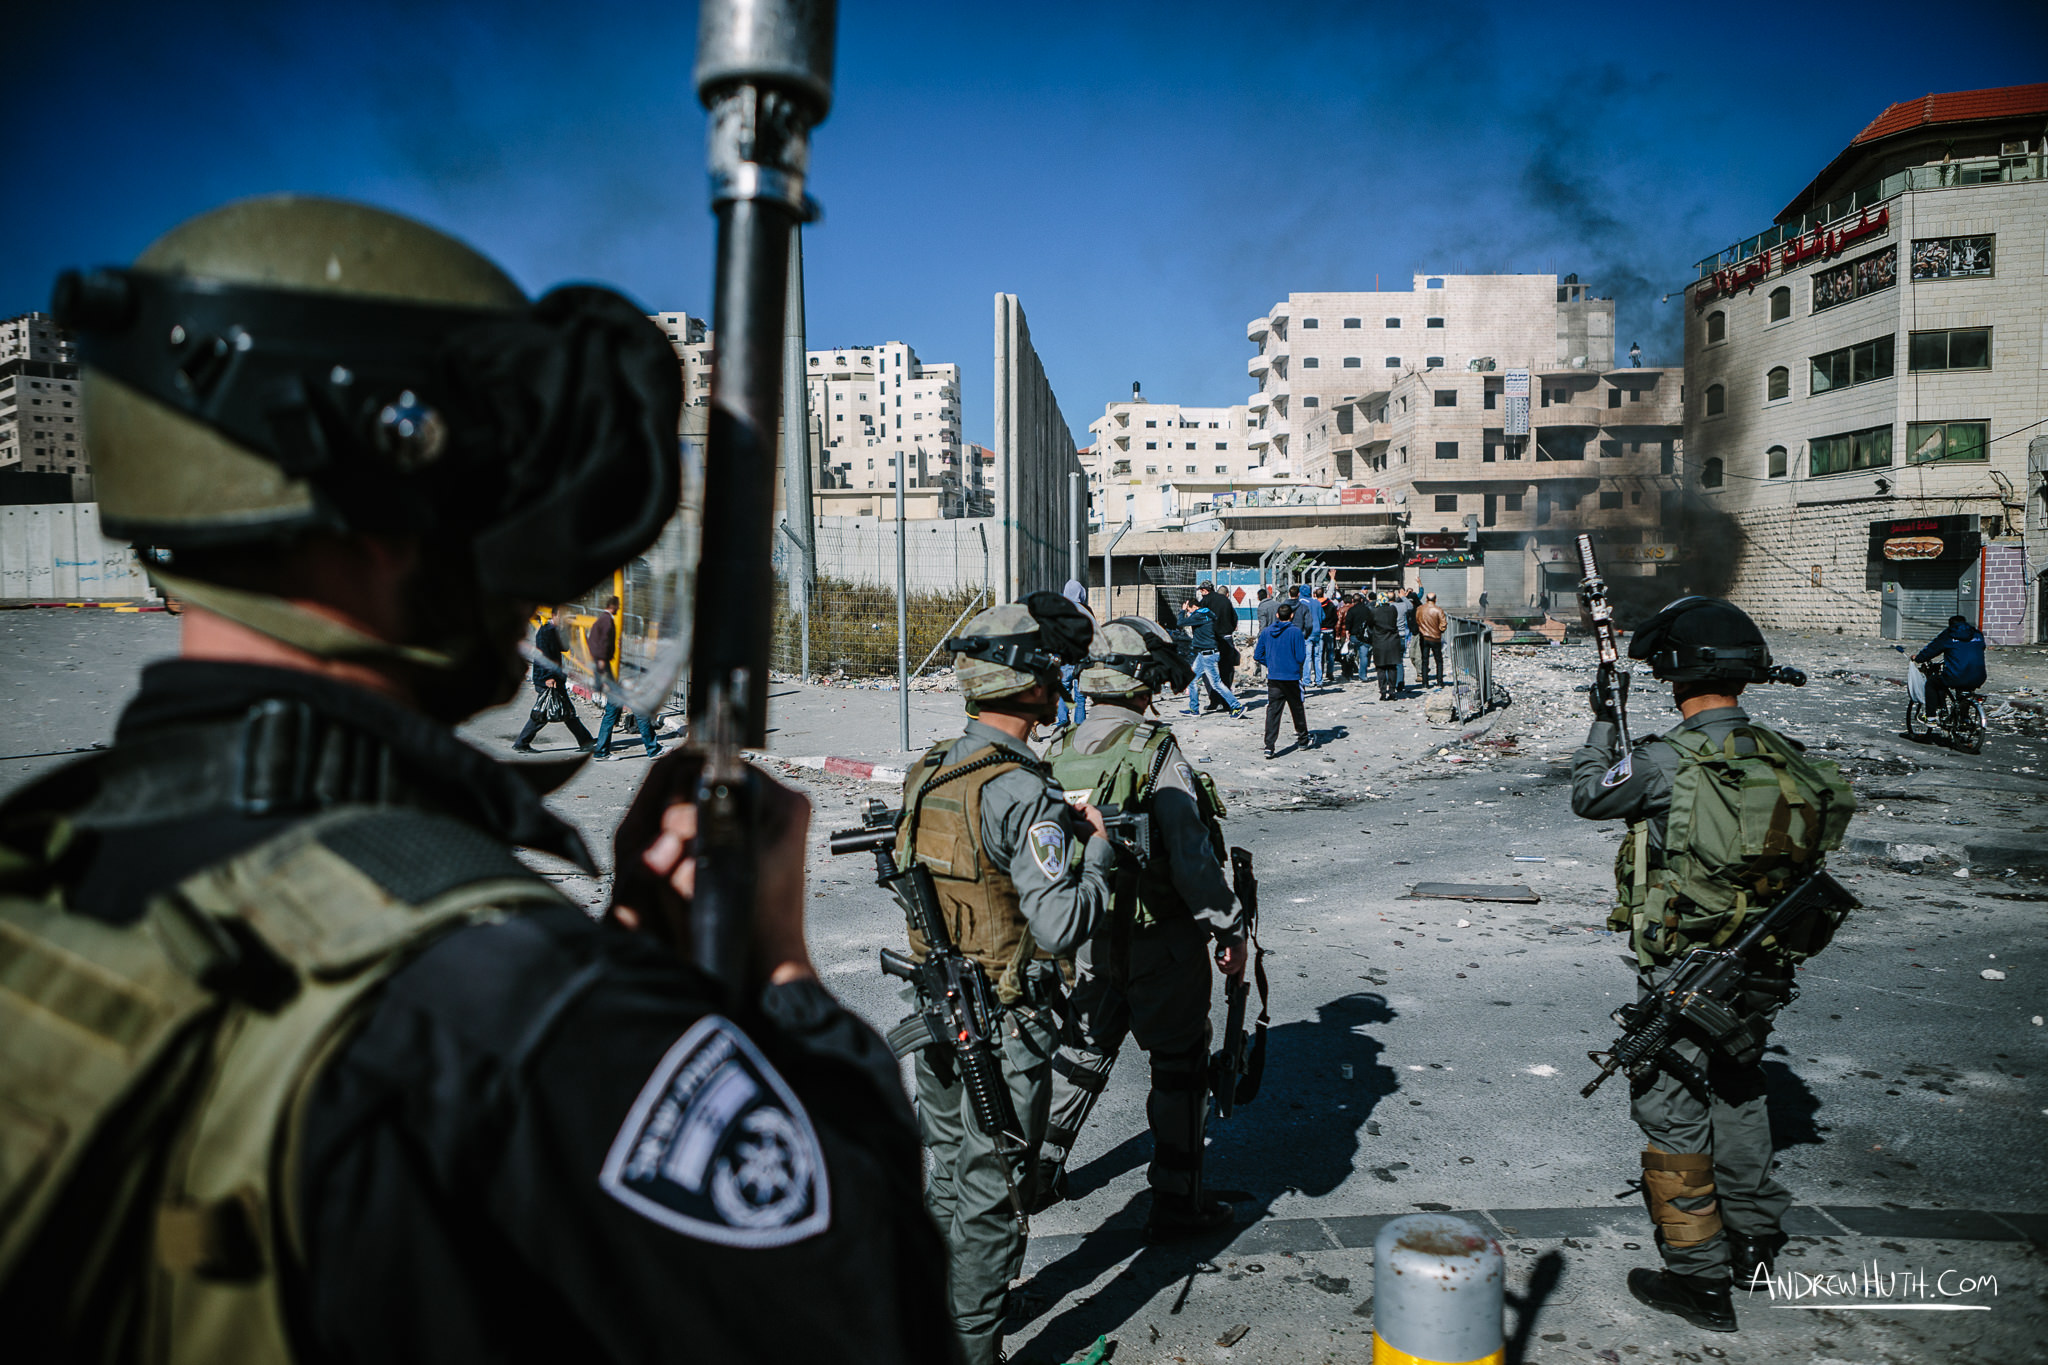 Israeli military using tear gas and guns in an armed conflict with the residents of Shu'afat Refugee Camp.  Palestinian youth clash with Israeli military in Shu'afat Refugee Camp in East Jerusalem on Friday, November 7, 2014. The recent, but temporarily total closure of one of Muslim's holiest sites, the Al-Aqsa Mosque, (the first since 1967) and the subsequent limited access for many Muslims to the mosque since has raised tension between Israeli's military and the Arab community.